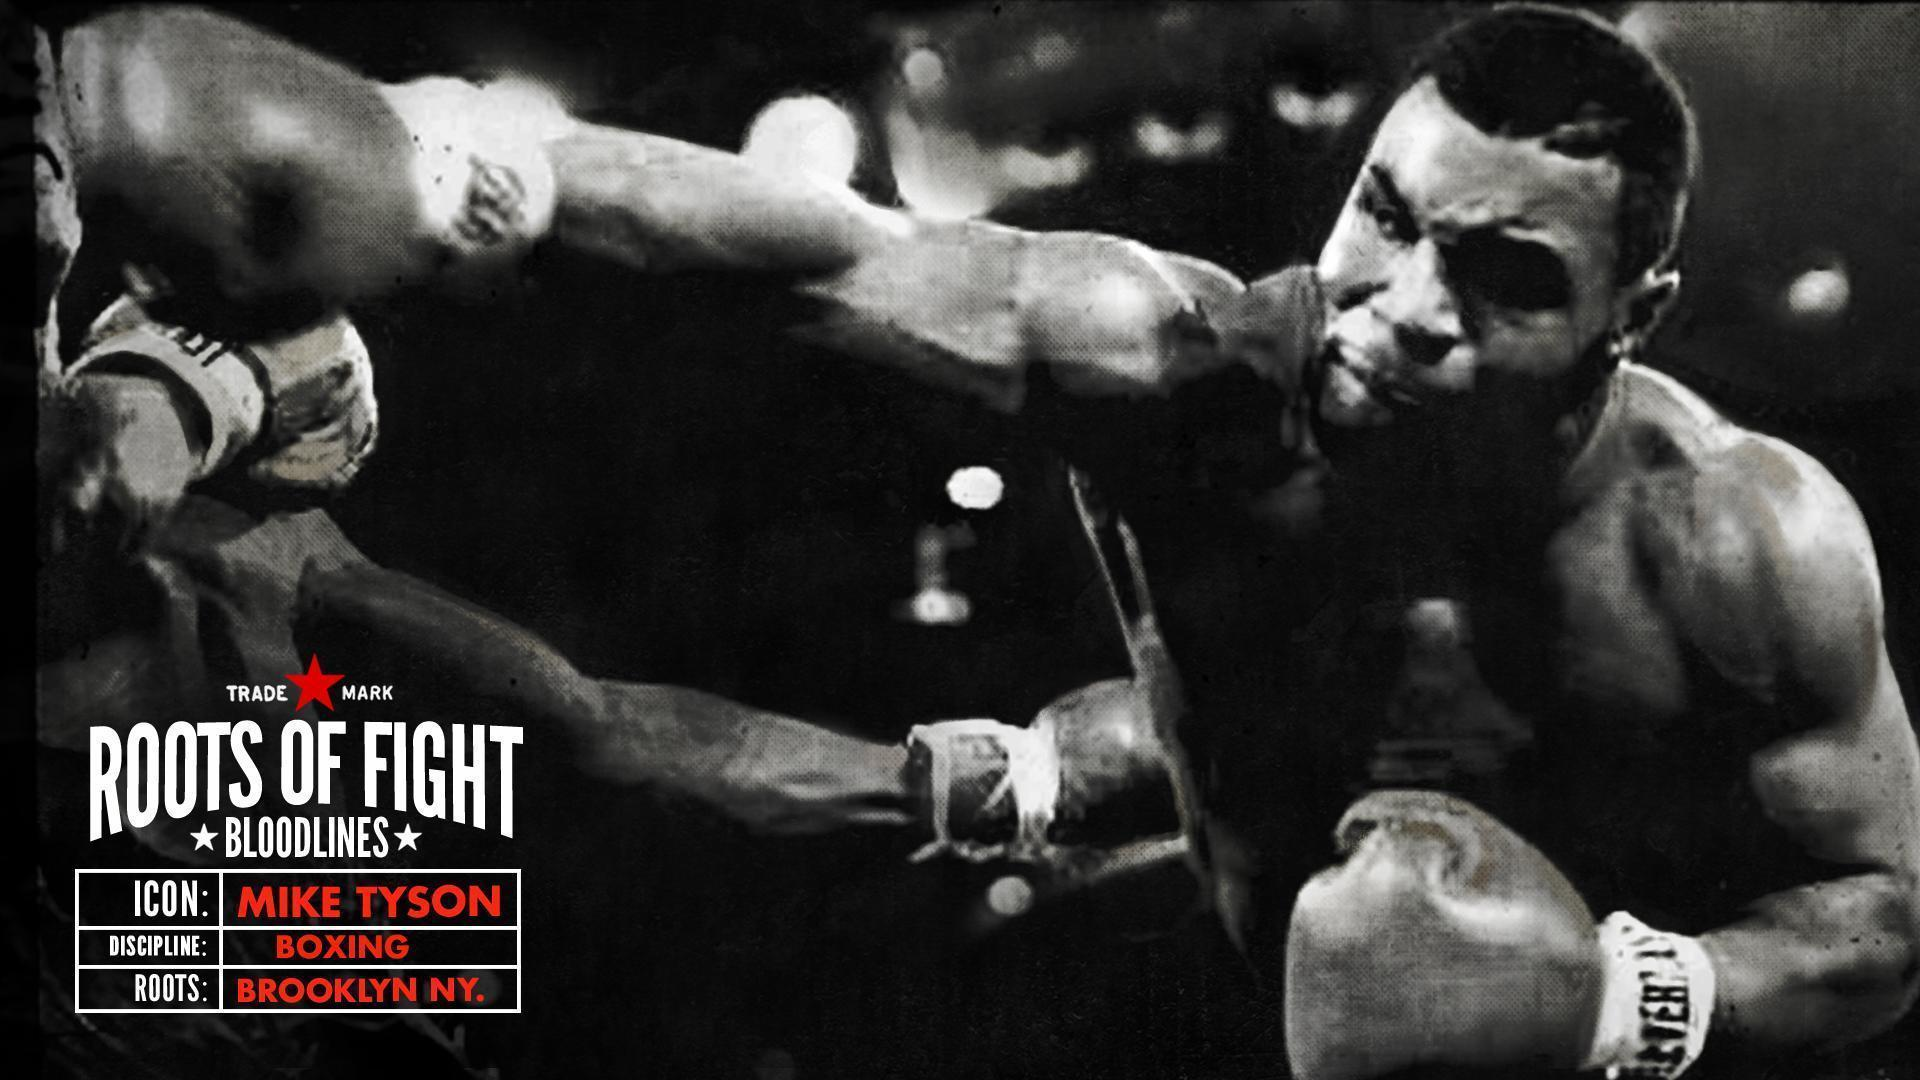 Iron Mike Tyson wallpapers and images - wallpapers, pictures, photos